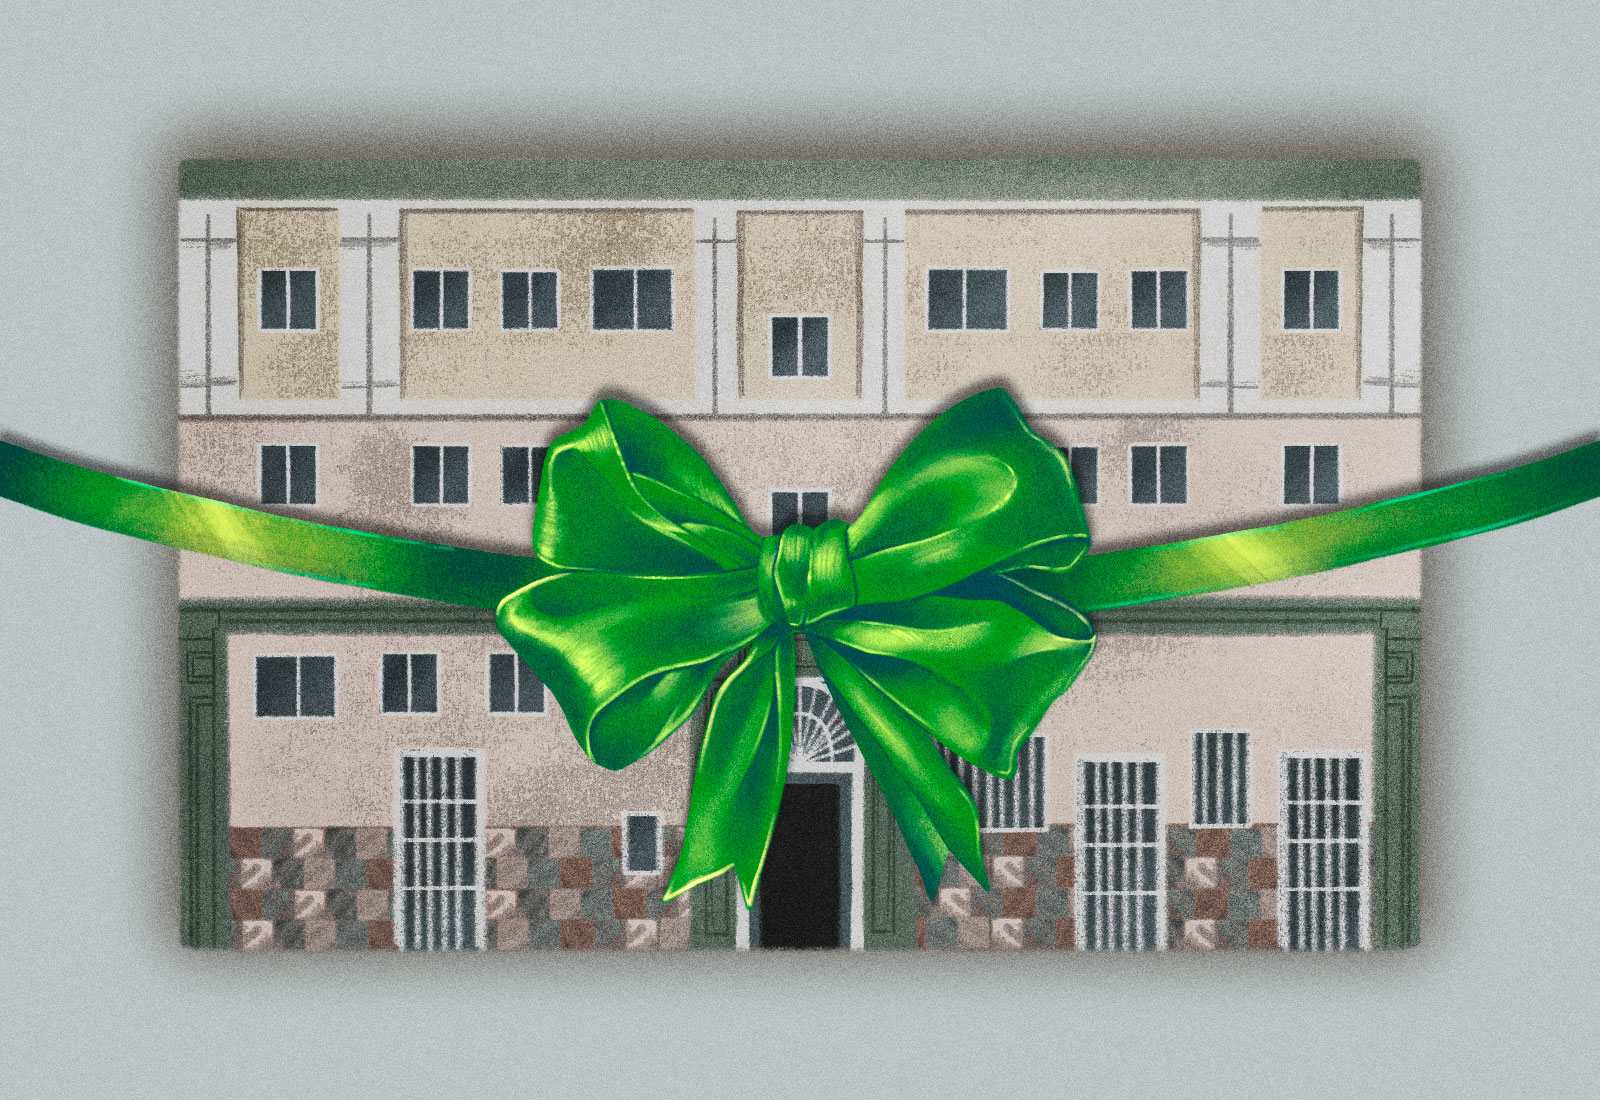 Illustration: an apartment building with a green bow in front of it